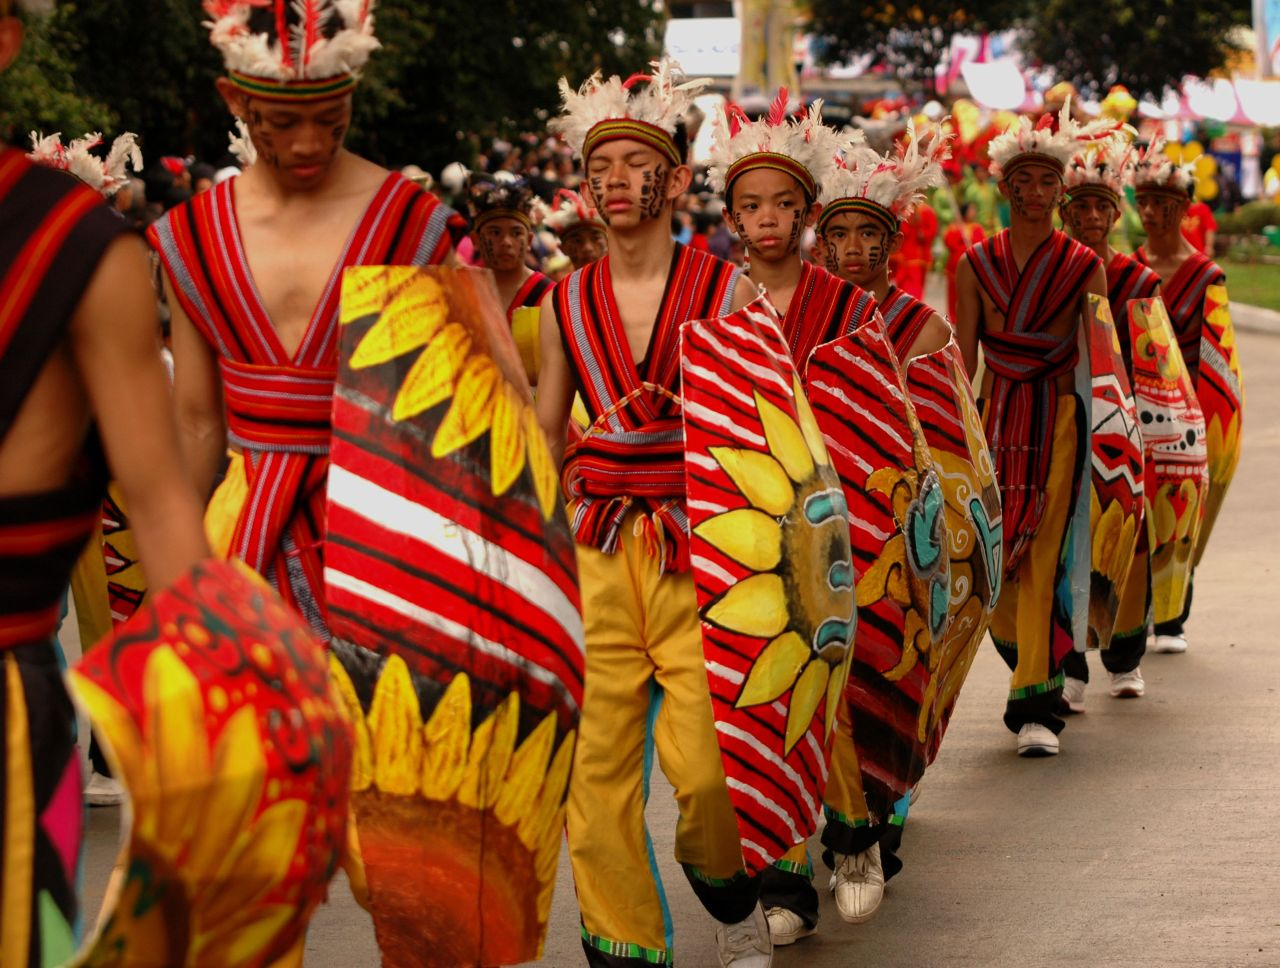 PANAGBENGA FESTIVAL 2020: Baguio City Flower Festival Schedule Of Activities